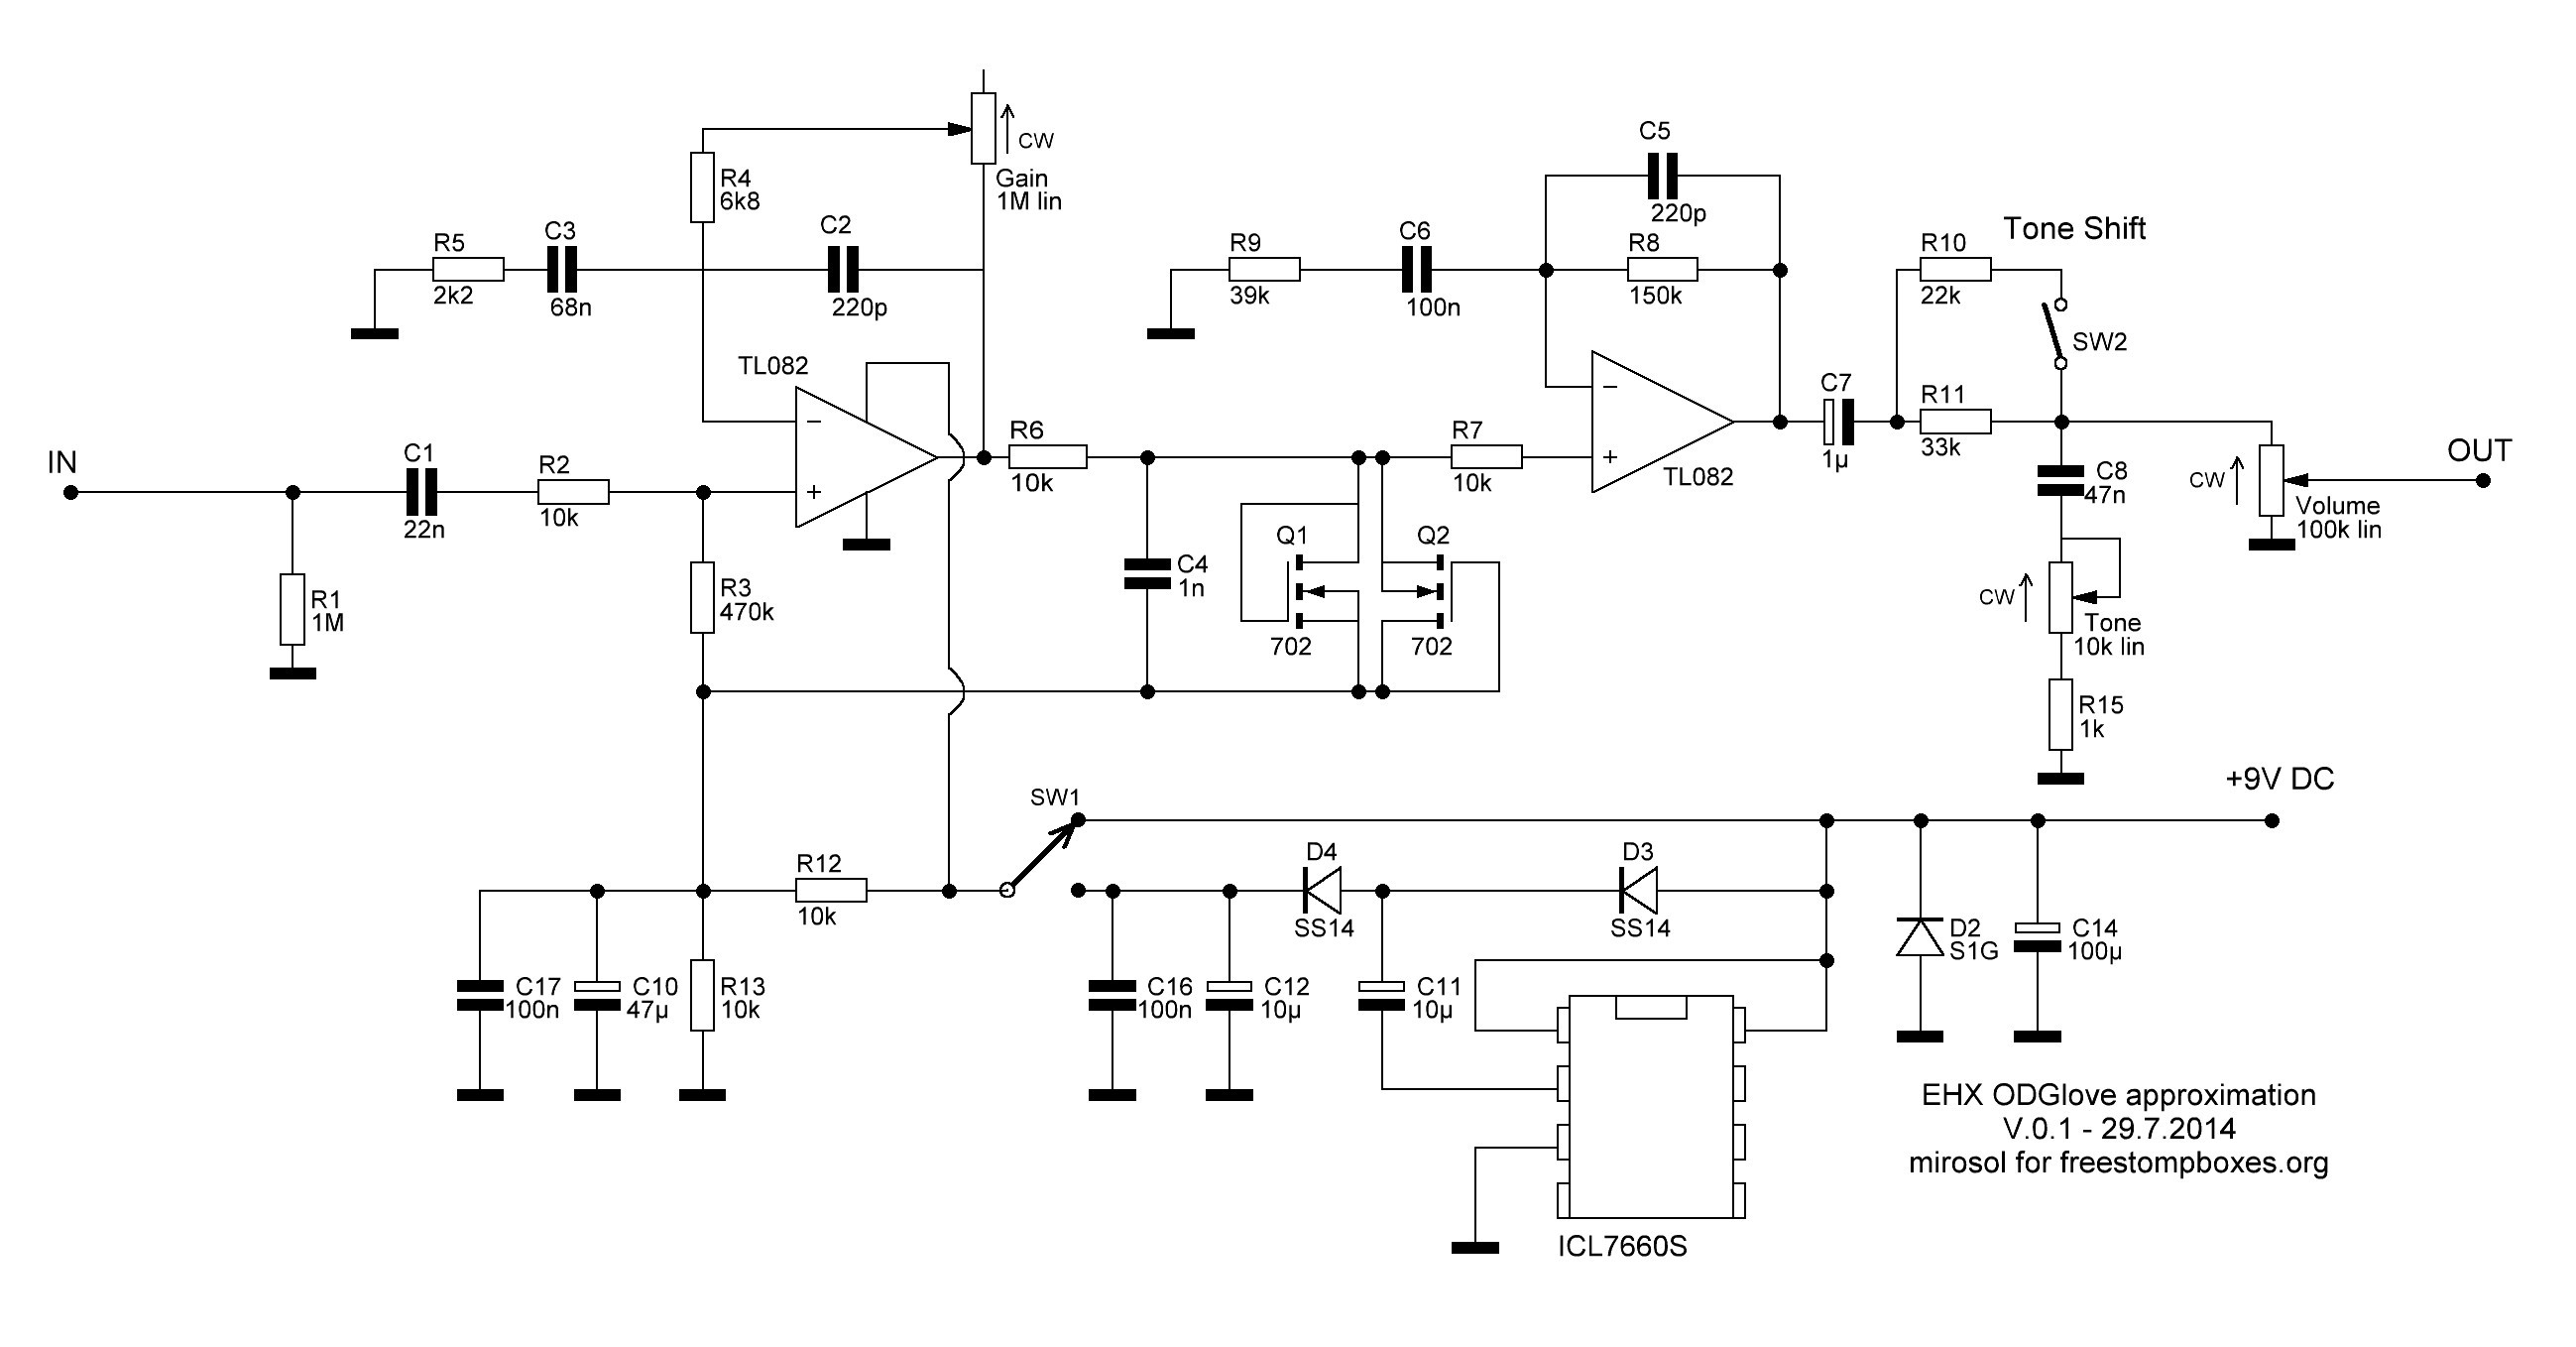 t 49f wiring diagram Download-Mosrite Guitar Wiring Diagram New Perf And Pcb Effects Layouts Electro Harmonix Od Glove 11-p